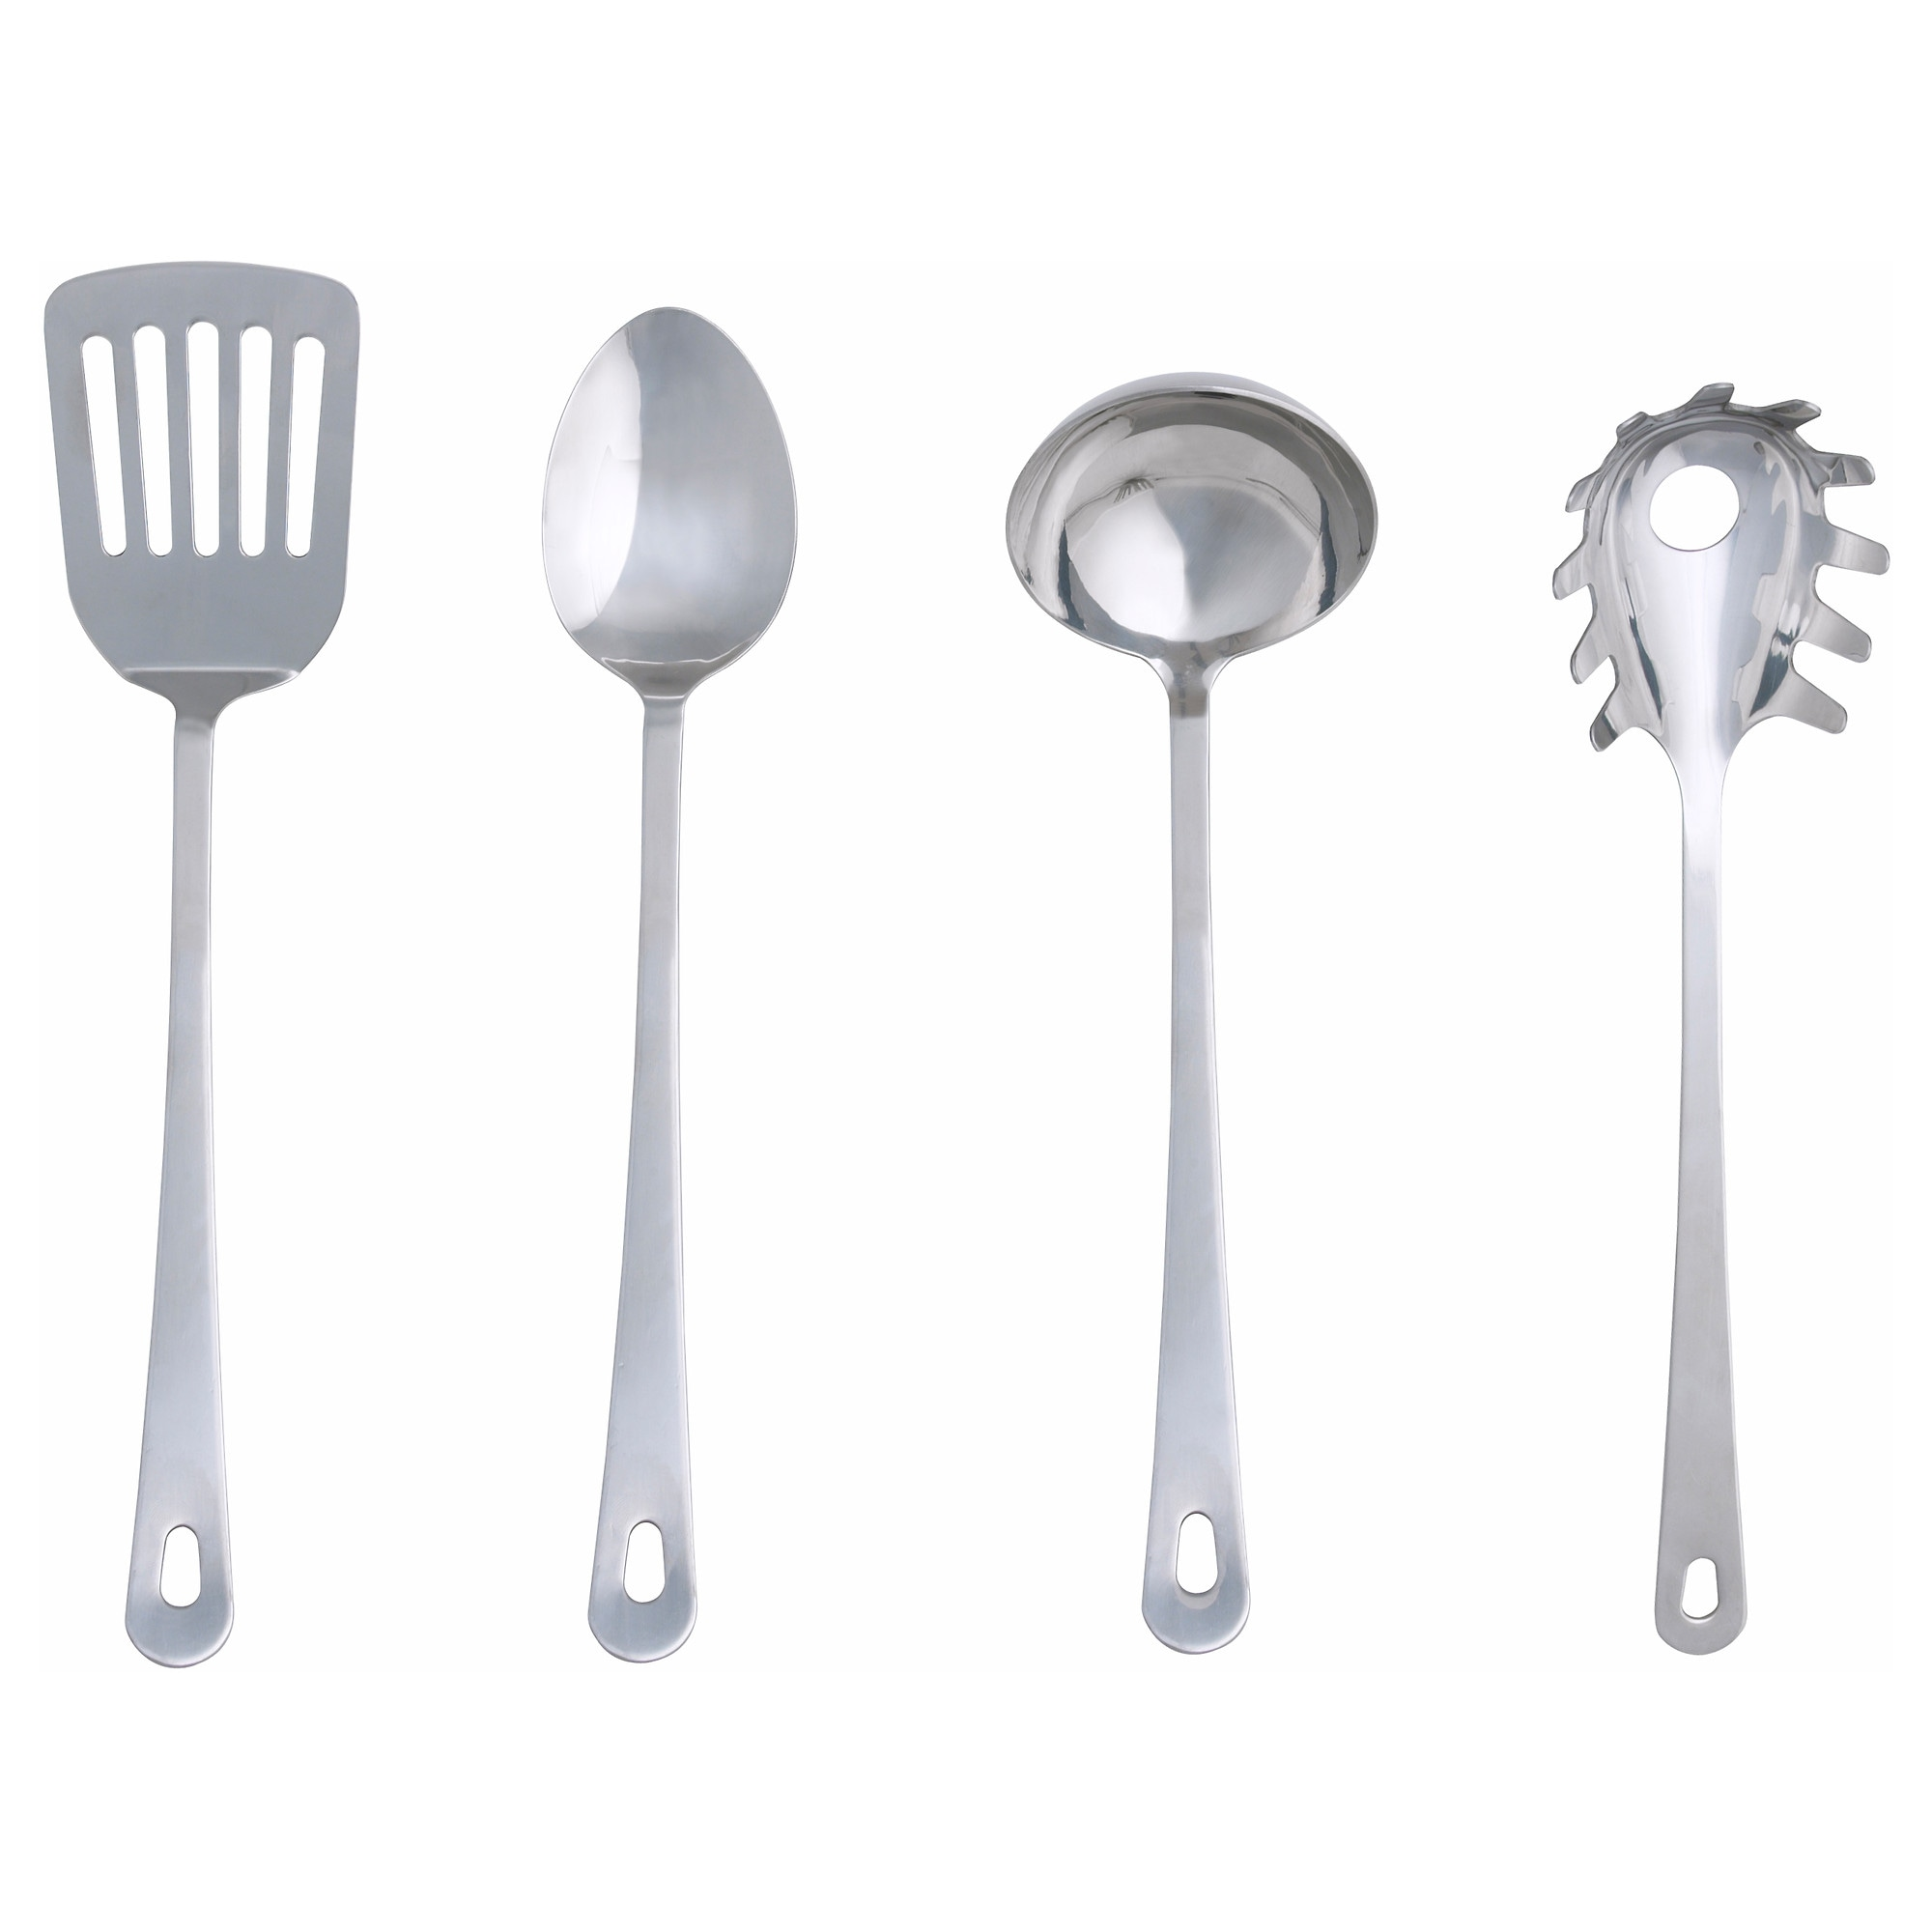 GRUNKA 4-piece kitchen utensil set - IKEA